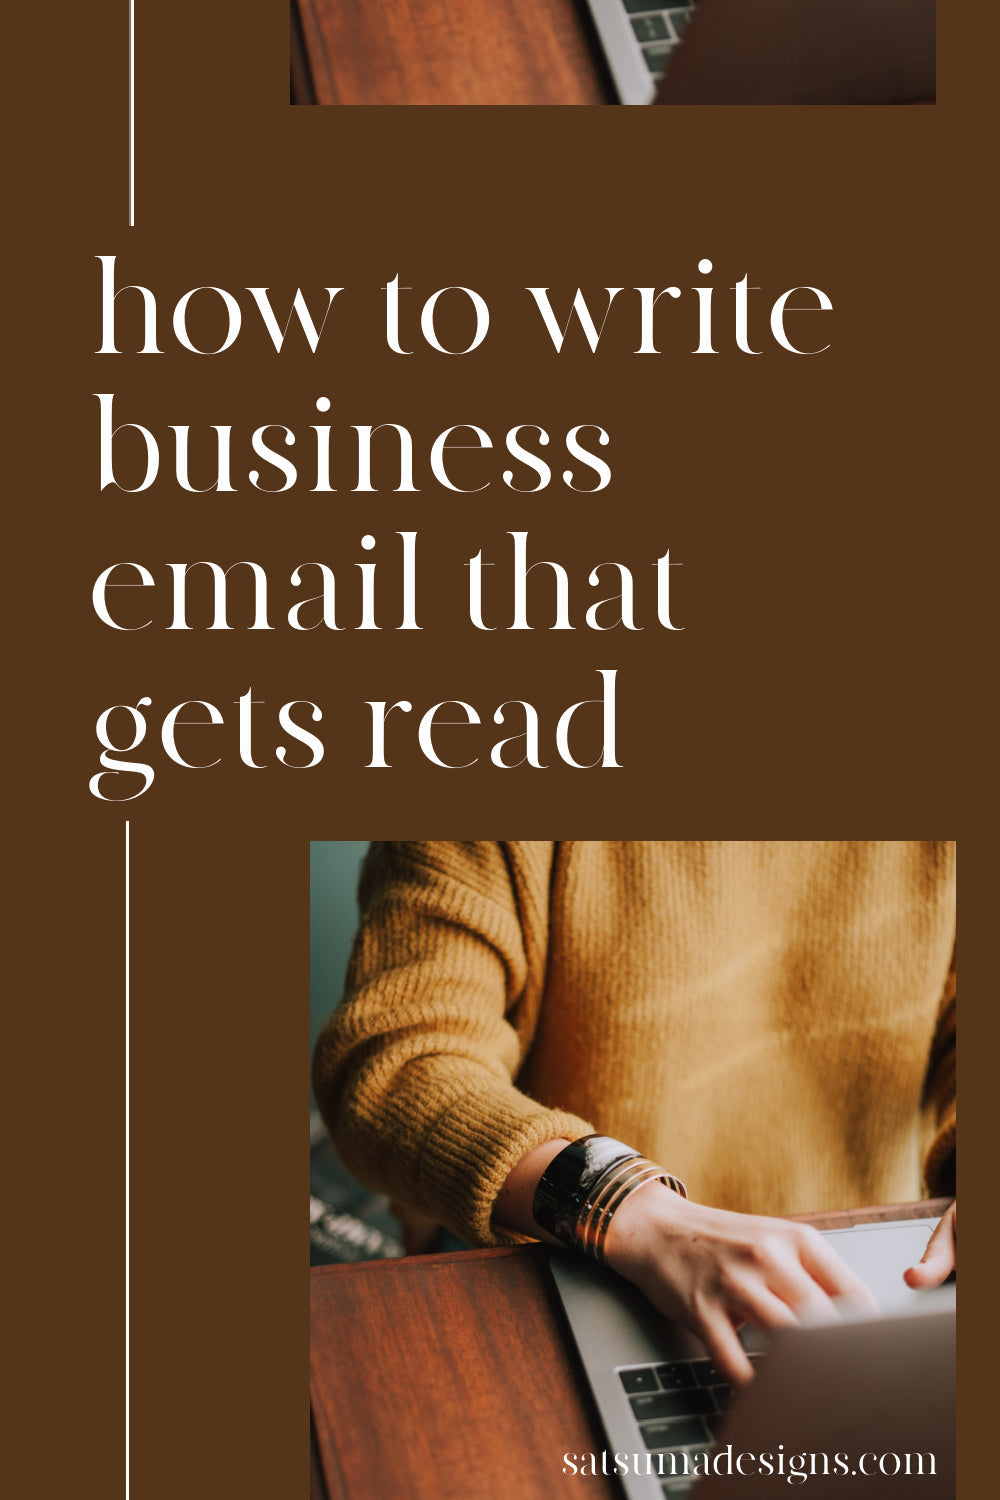 Learn how to write business emails that are easy and fun to read. When you follow these tips you will decrease response time and complete action items in less time from your teams. #efficiency #teams #teamwork #clients #customercare #business #4hourworkweek